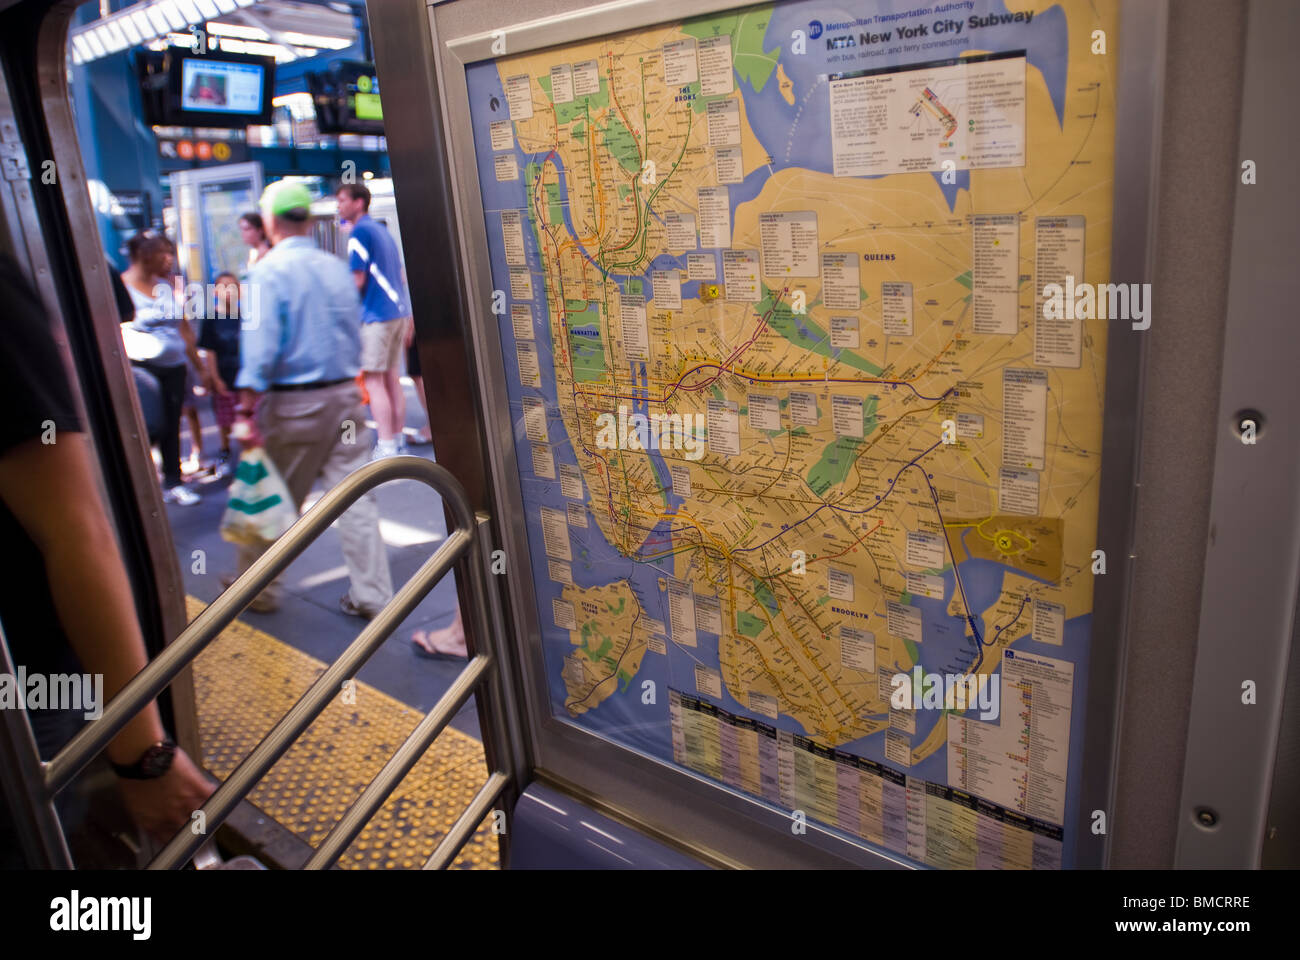 Train Subway Map New York.Passengers Pass A Subway Map As They Board A Q Train In Brooklyn In